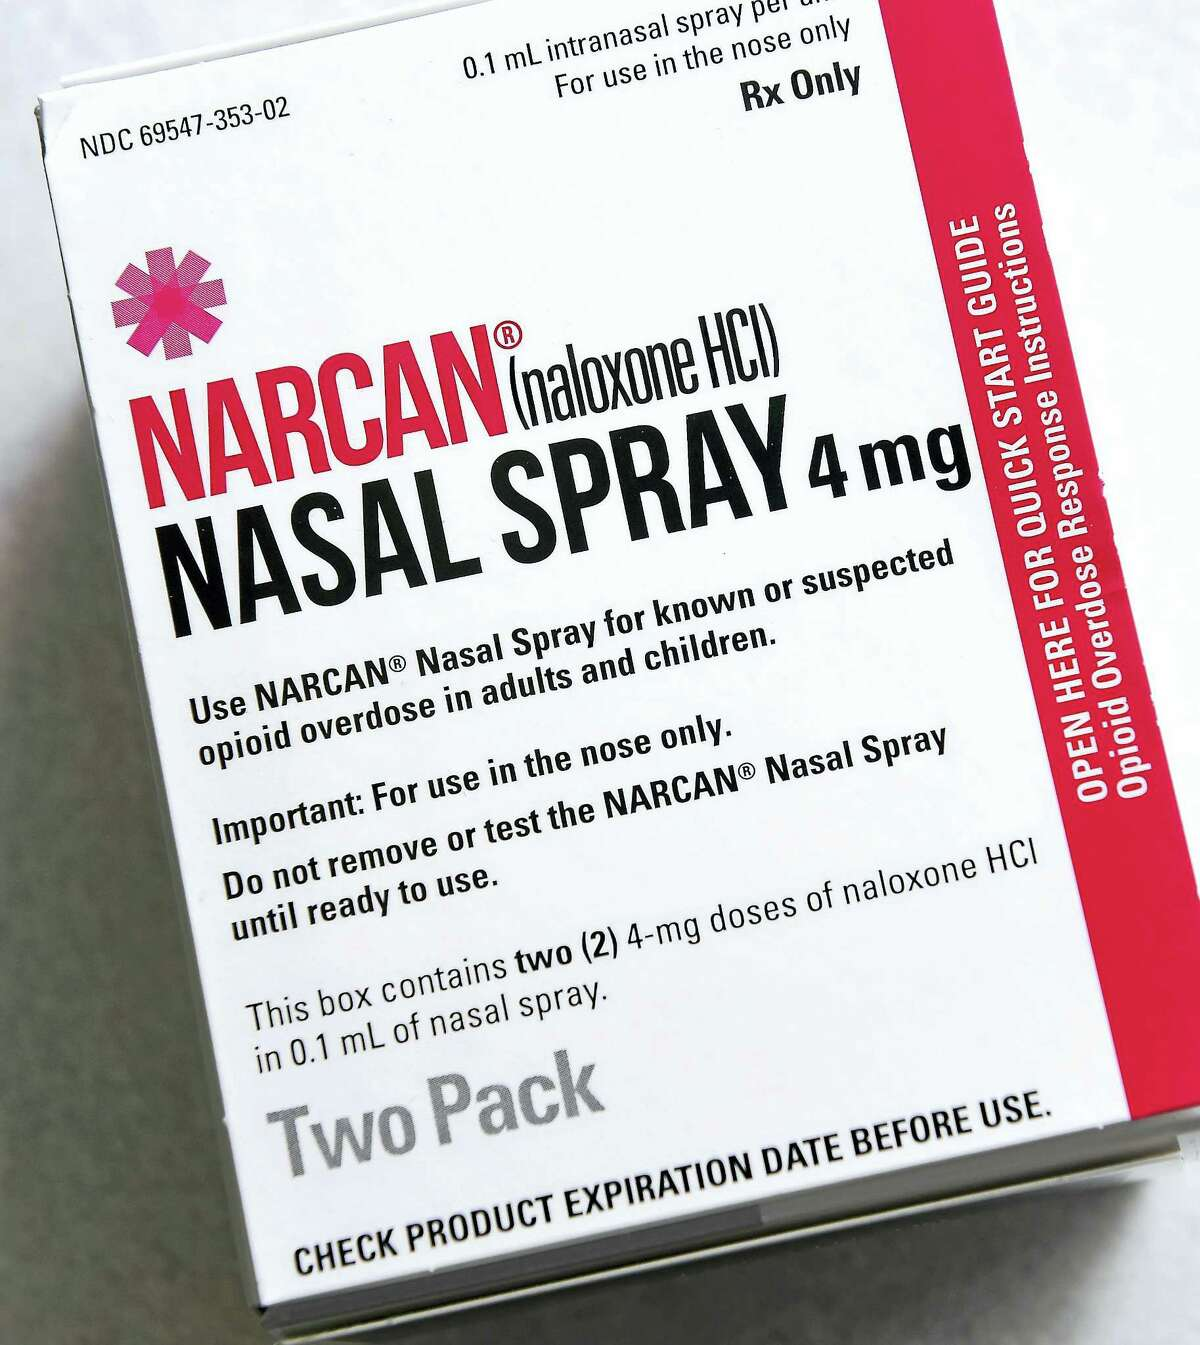 Narcan nasal spray photographed at Visels Pharmacy in New Haven.